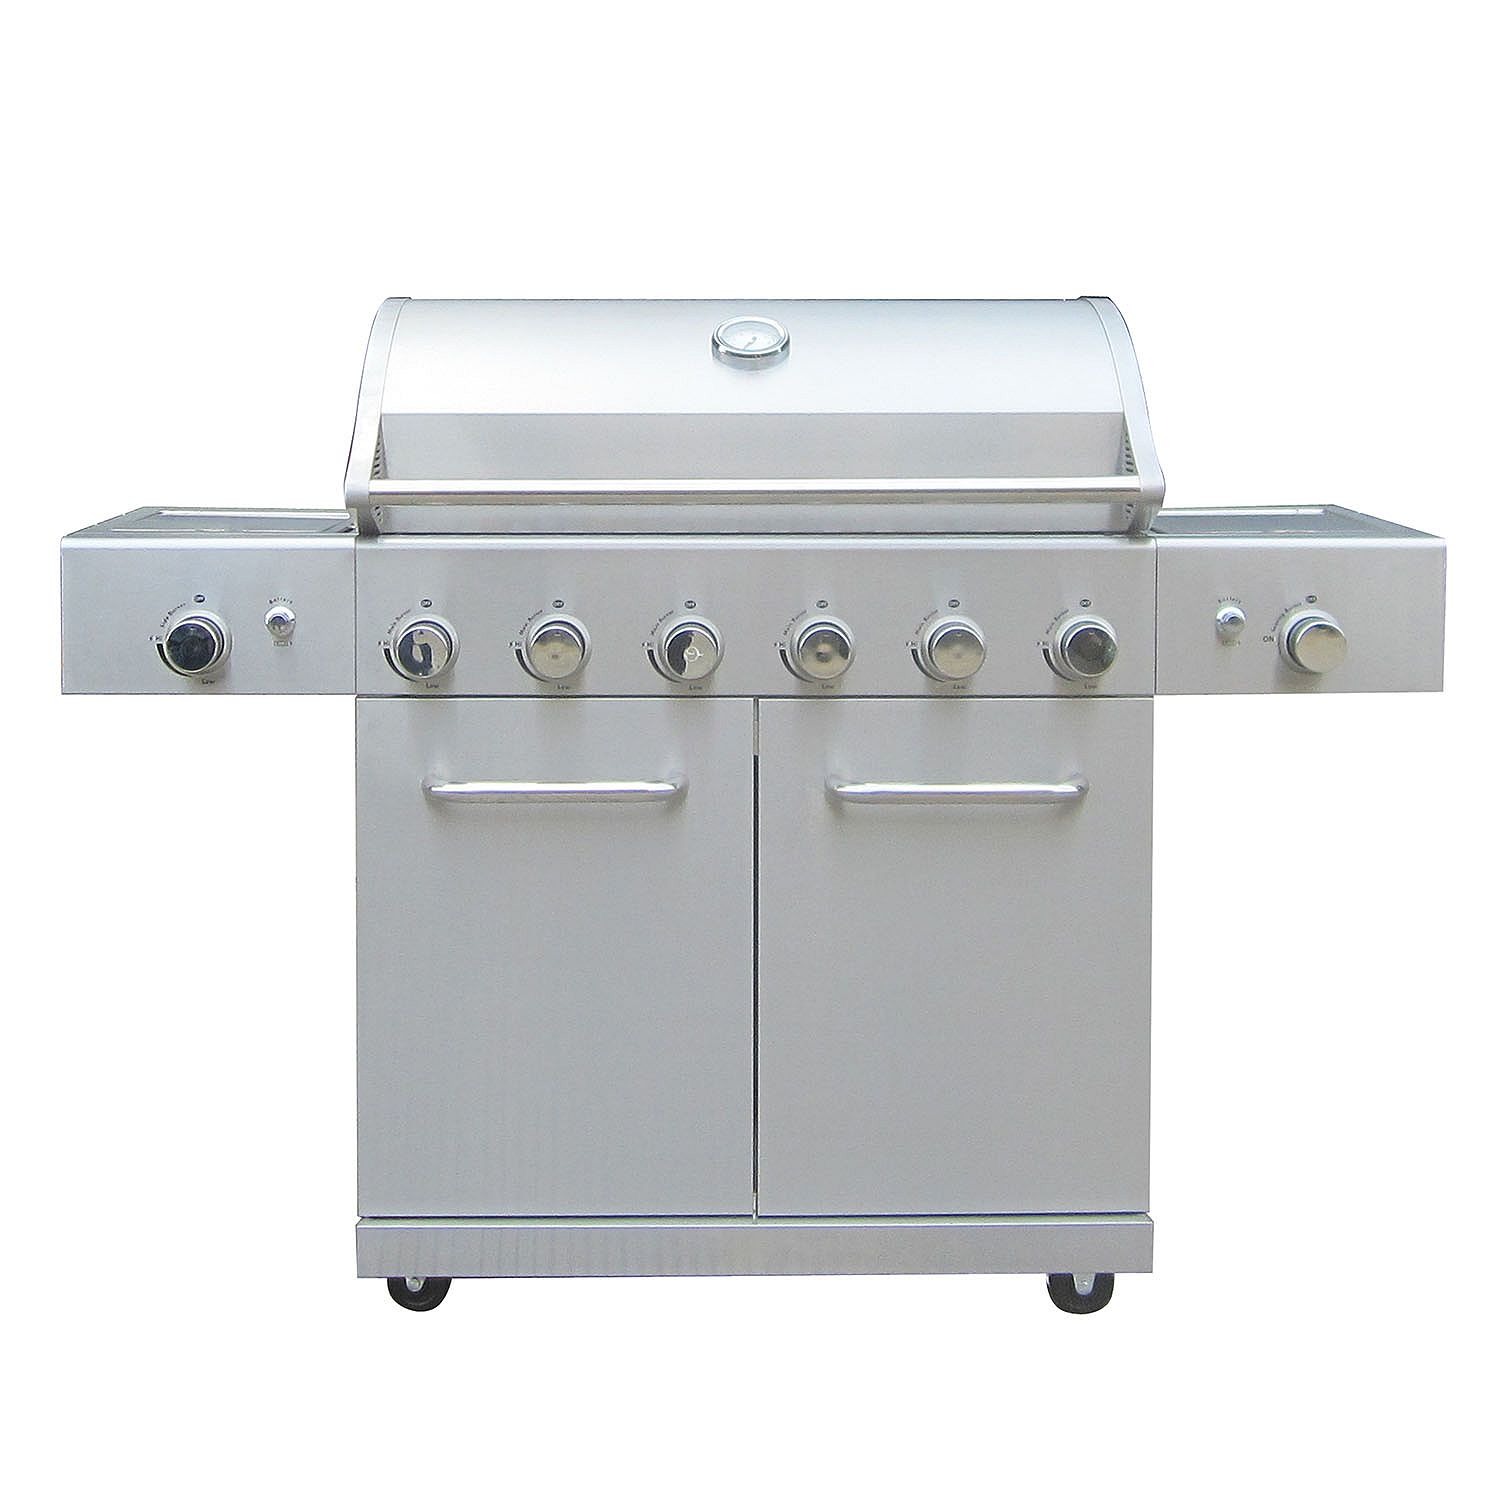 Stainless Steel Member's Mark Stand Alone Grill with 8 Knobs, 2 Side Burners and Cabinet Doors.